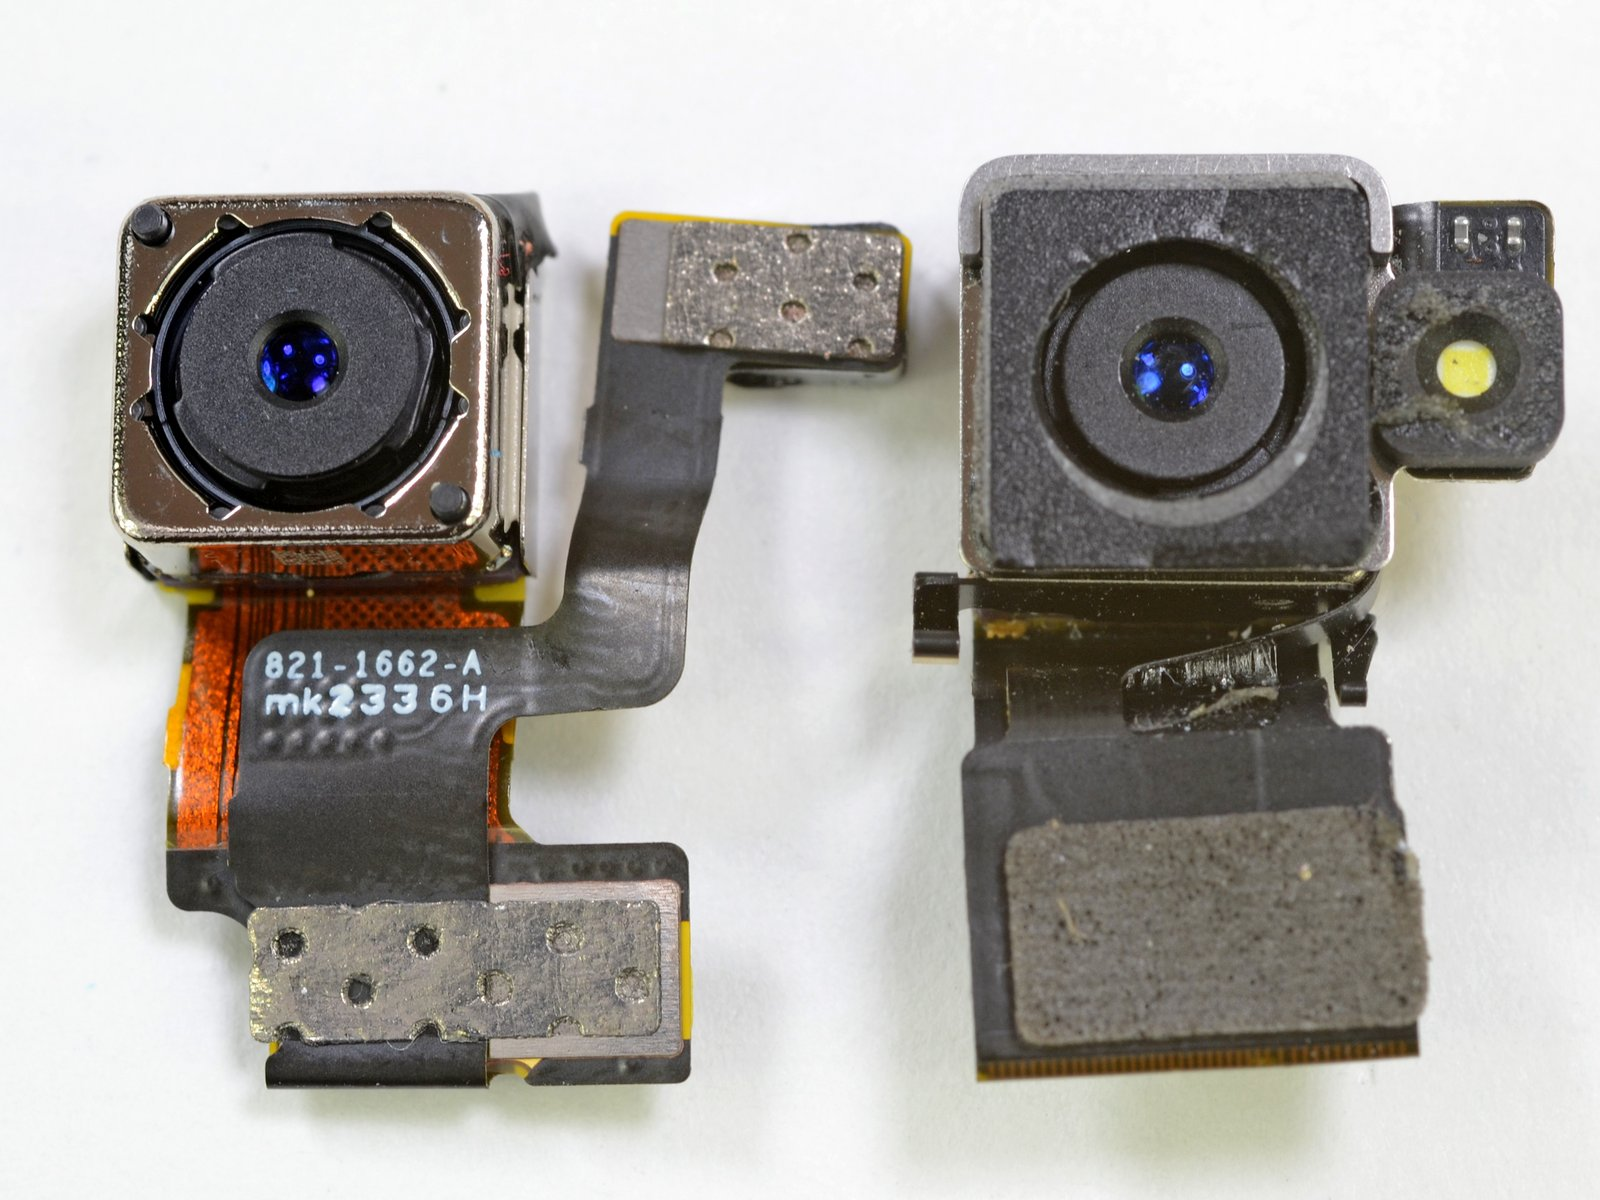 iFixit tears down iPhone 5, reveals new camera sensor and sapphire ...